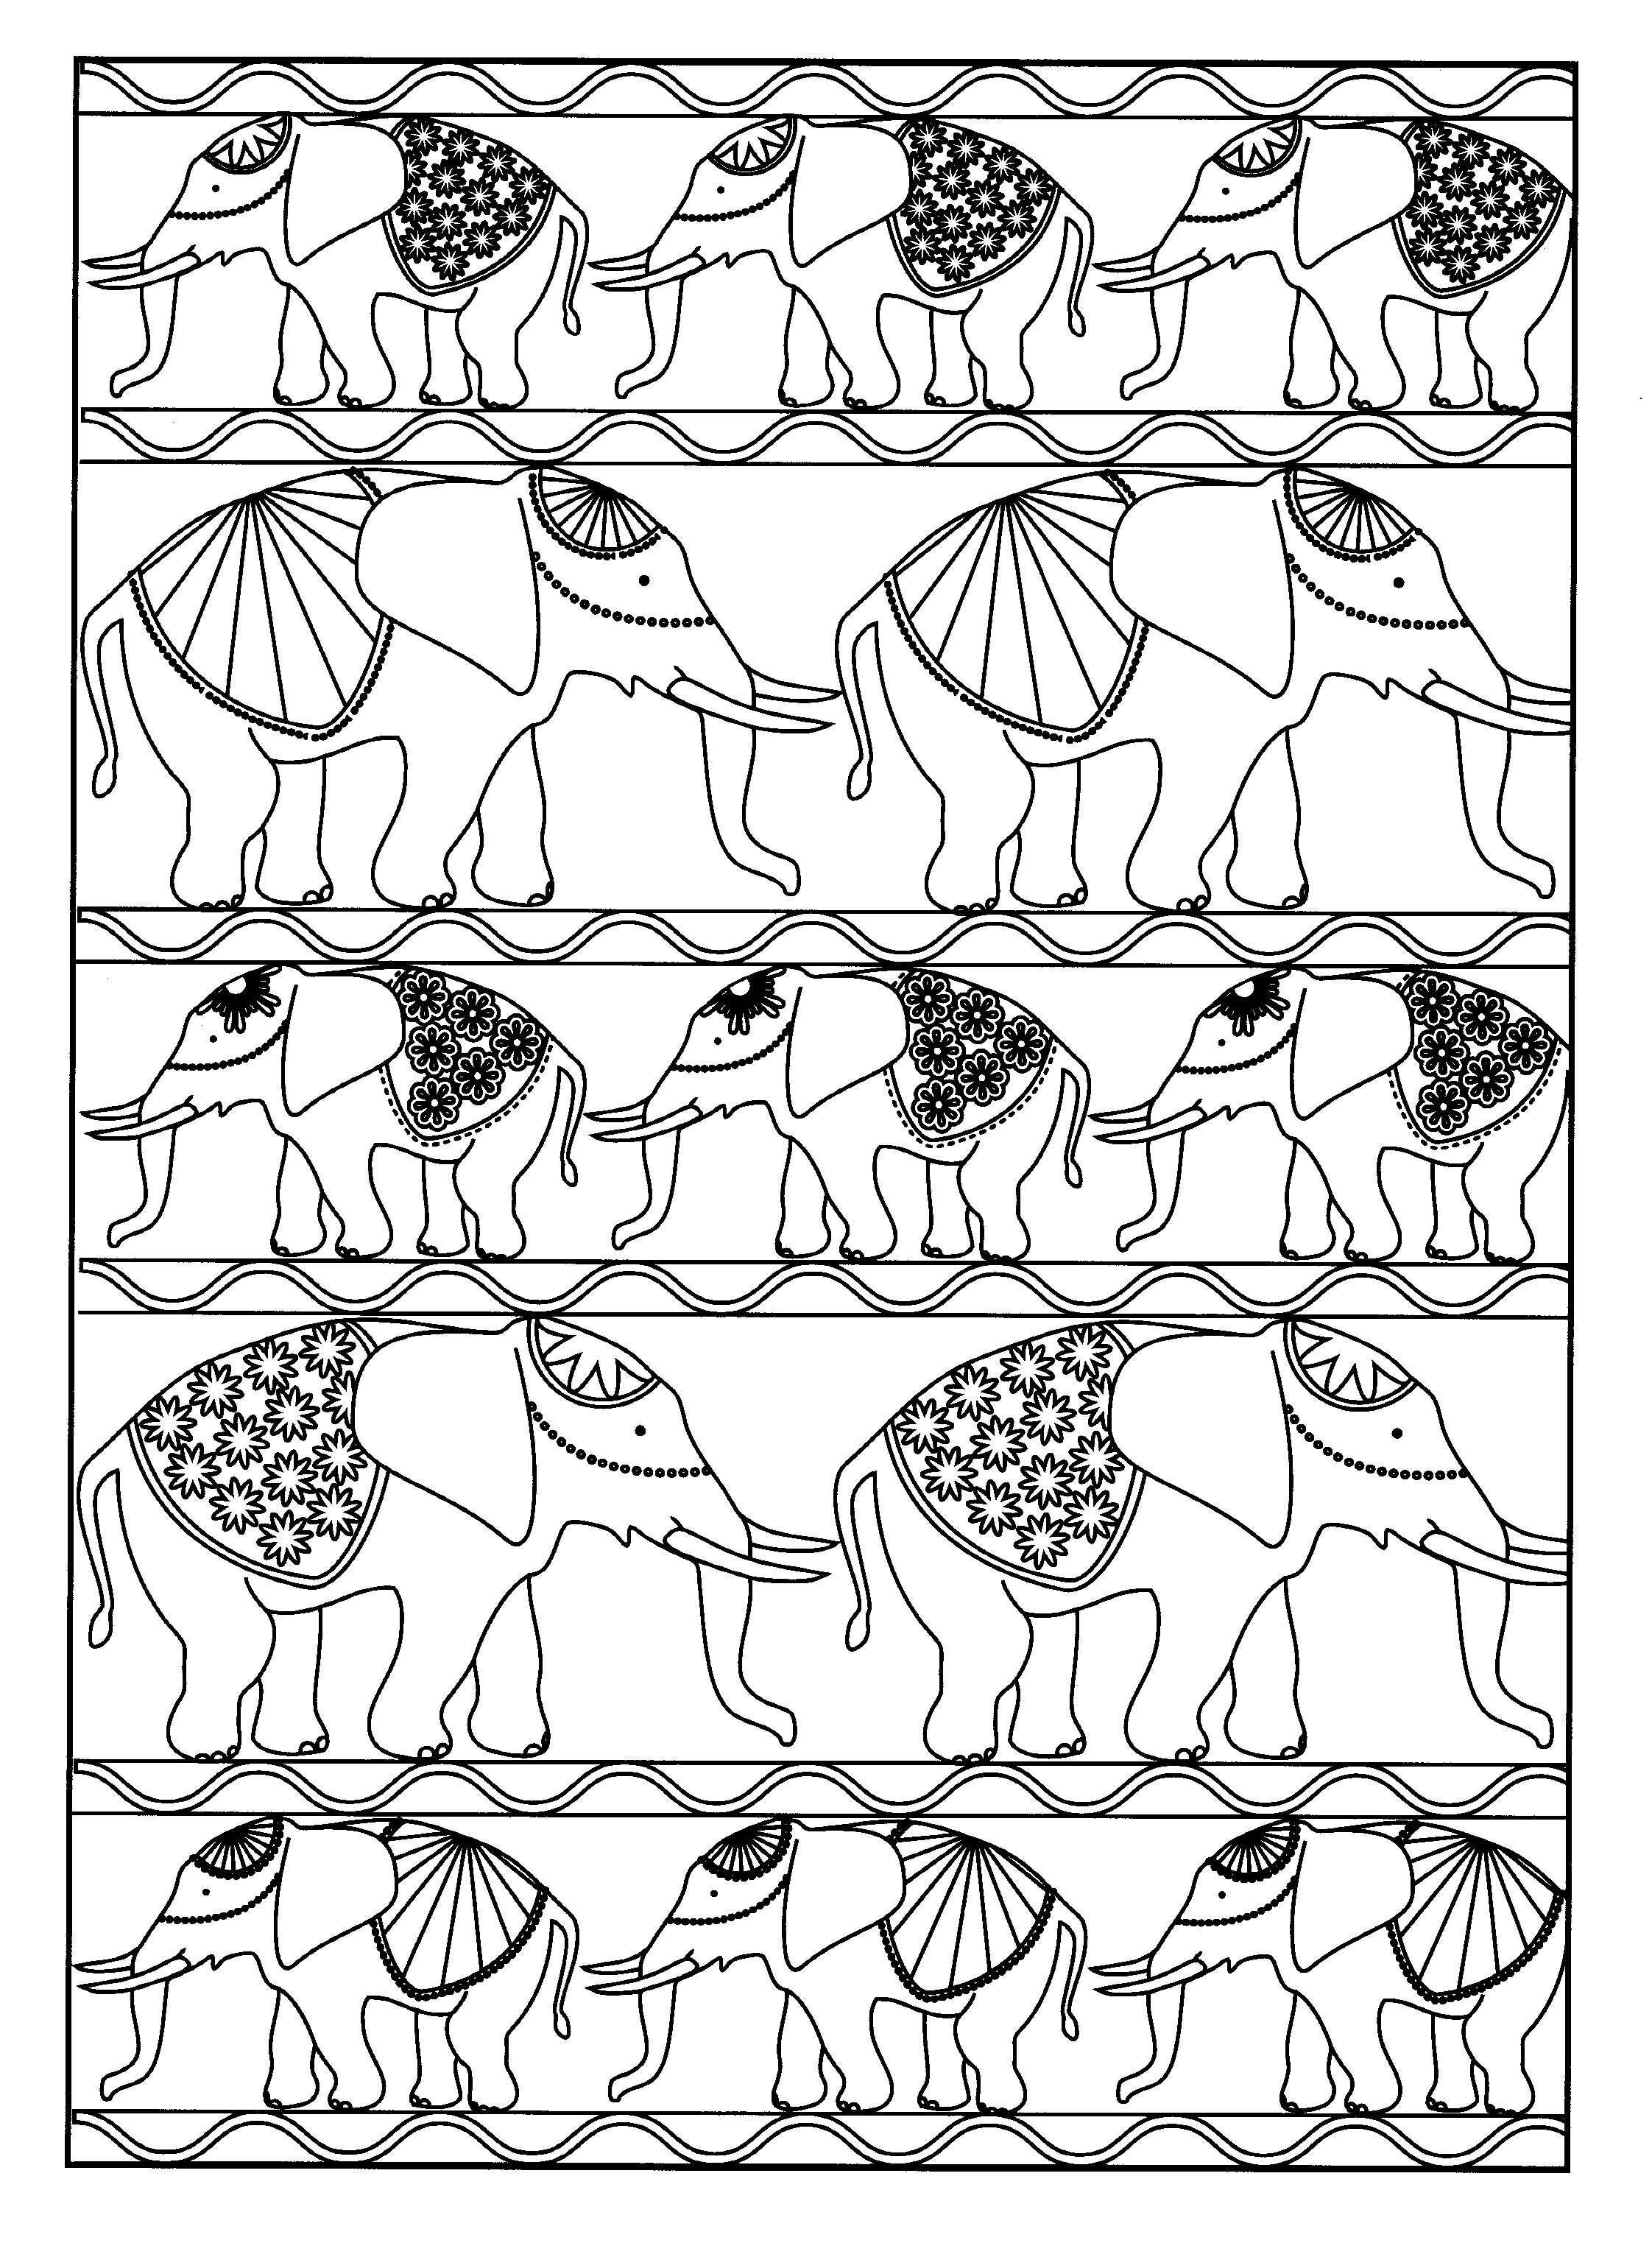 elephant colouring games color by number worksheets colouring elephant games